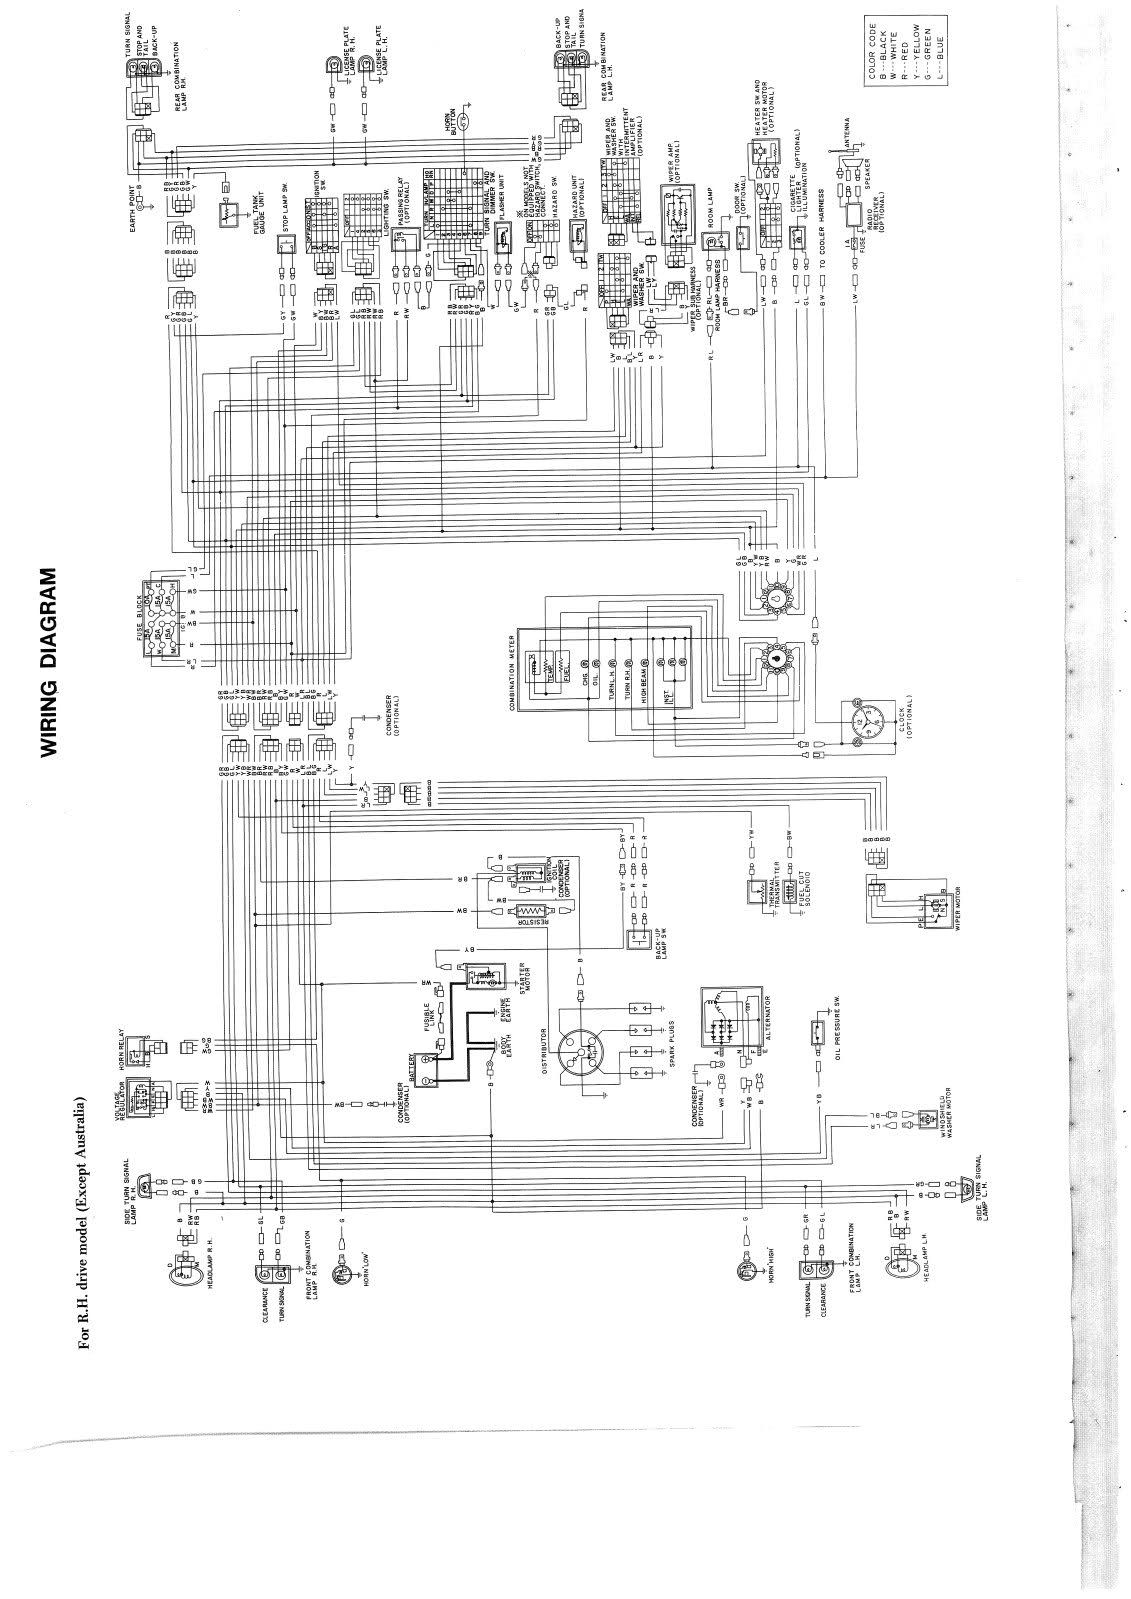 small resolution of 1974 datsun 620 truck wiring diagram